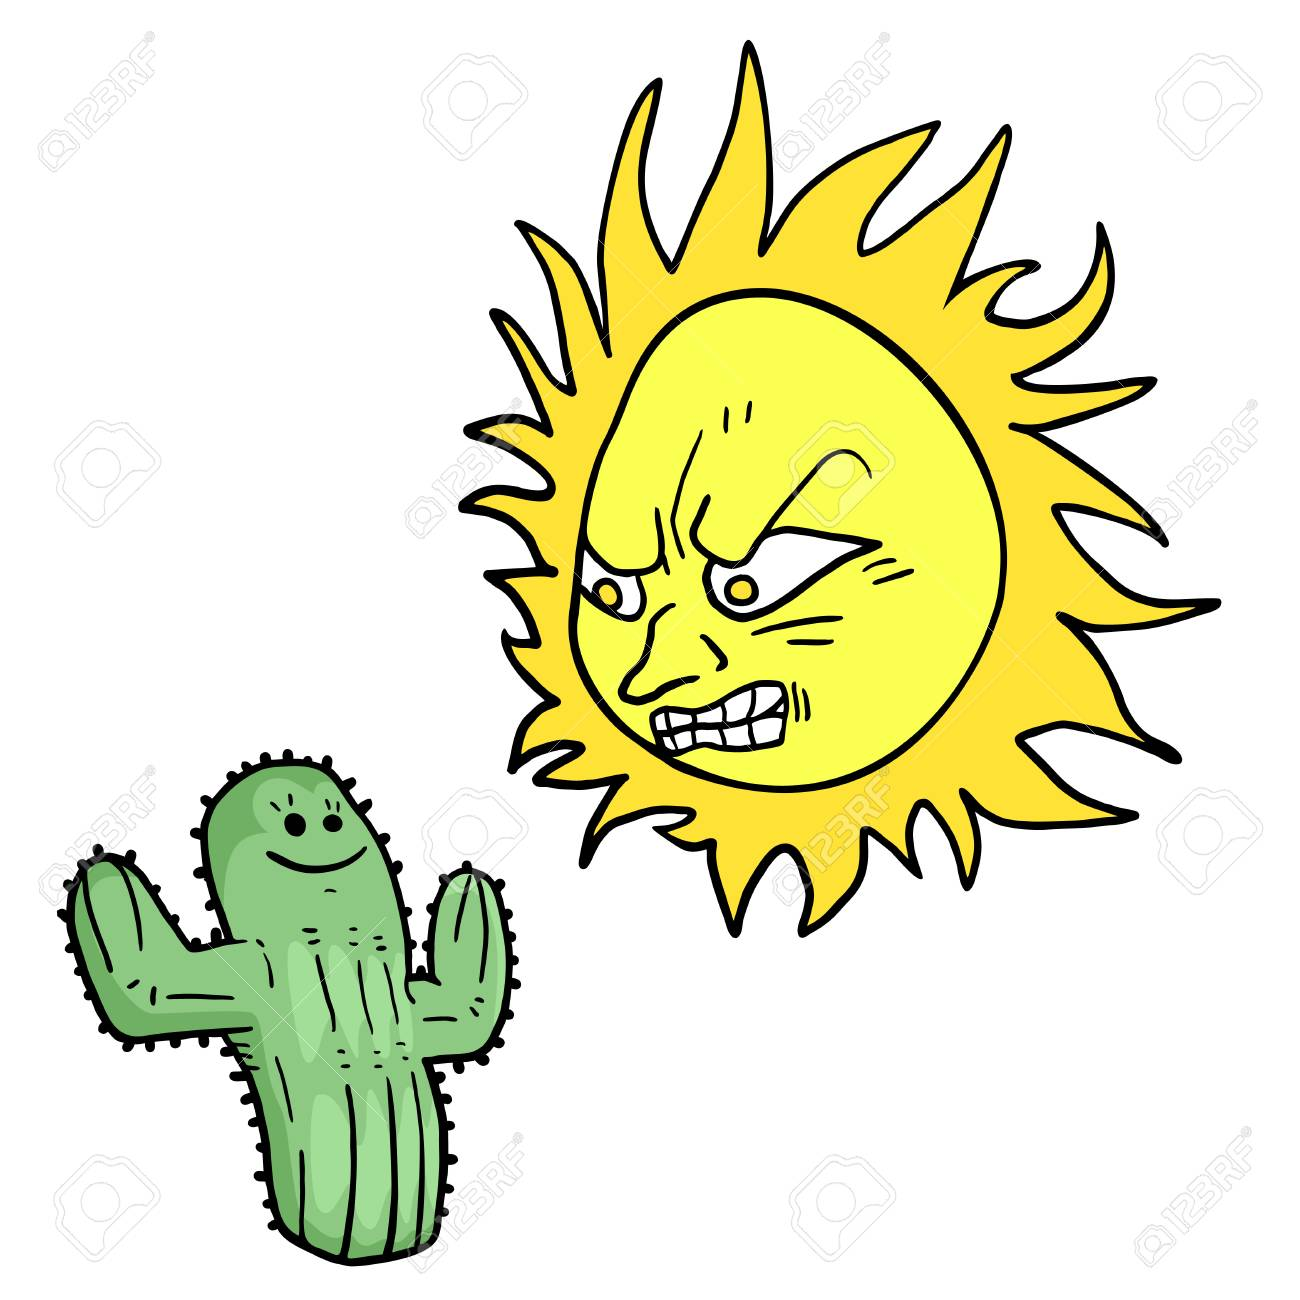 Angry Sun And Cactus Draw Royalty Free Cliparts Vectors And Stock